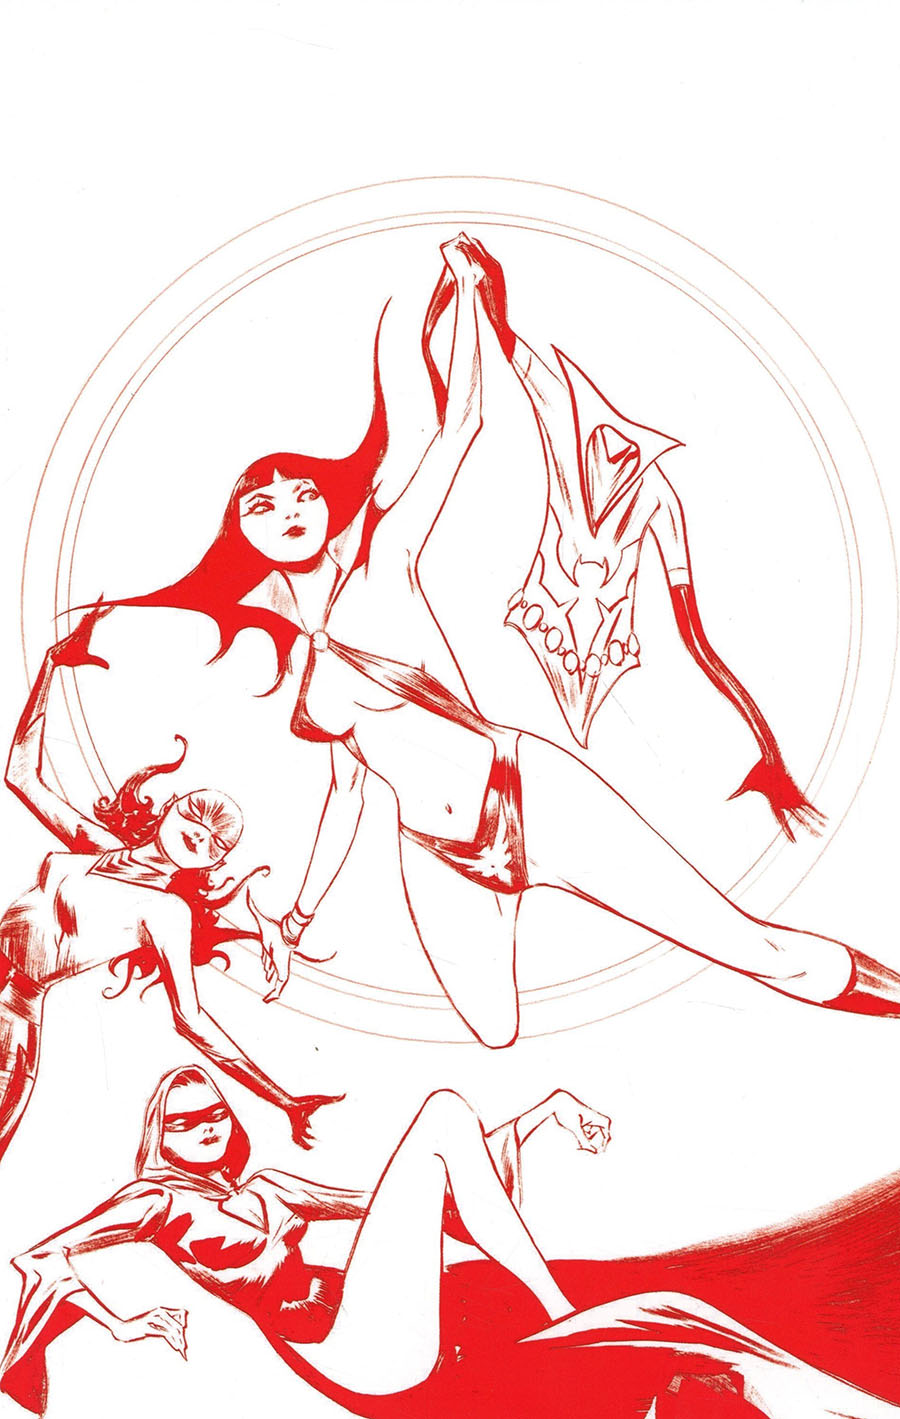 Vampirella The Dark Powers #1 Cover Z-I Ultra-Premium Limited Edition Jae Lee Crimson Red Line Art Virgin Cover